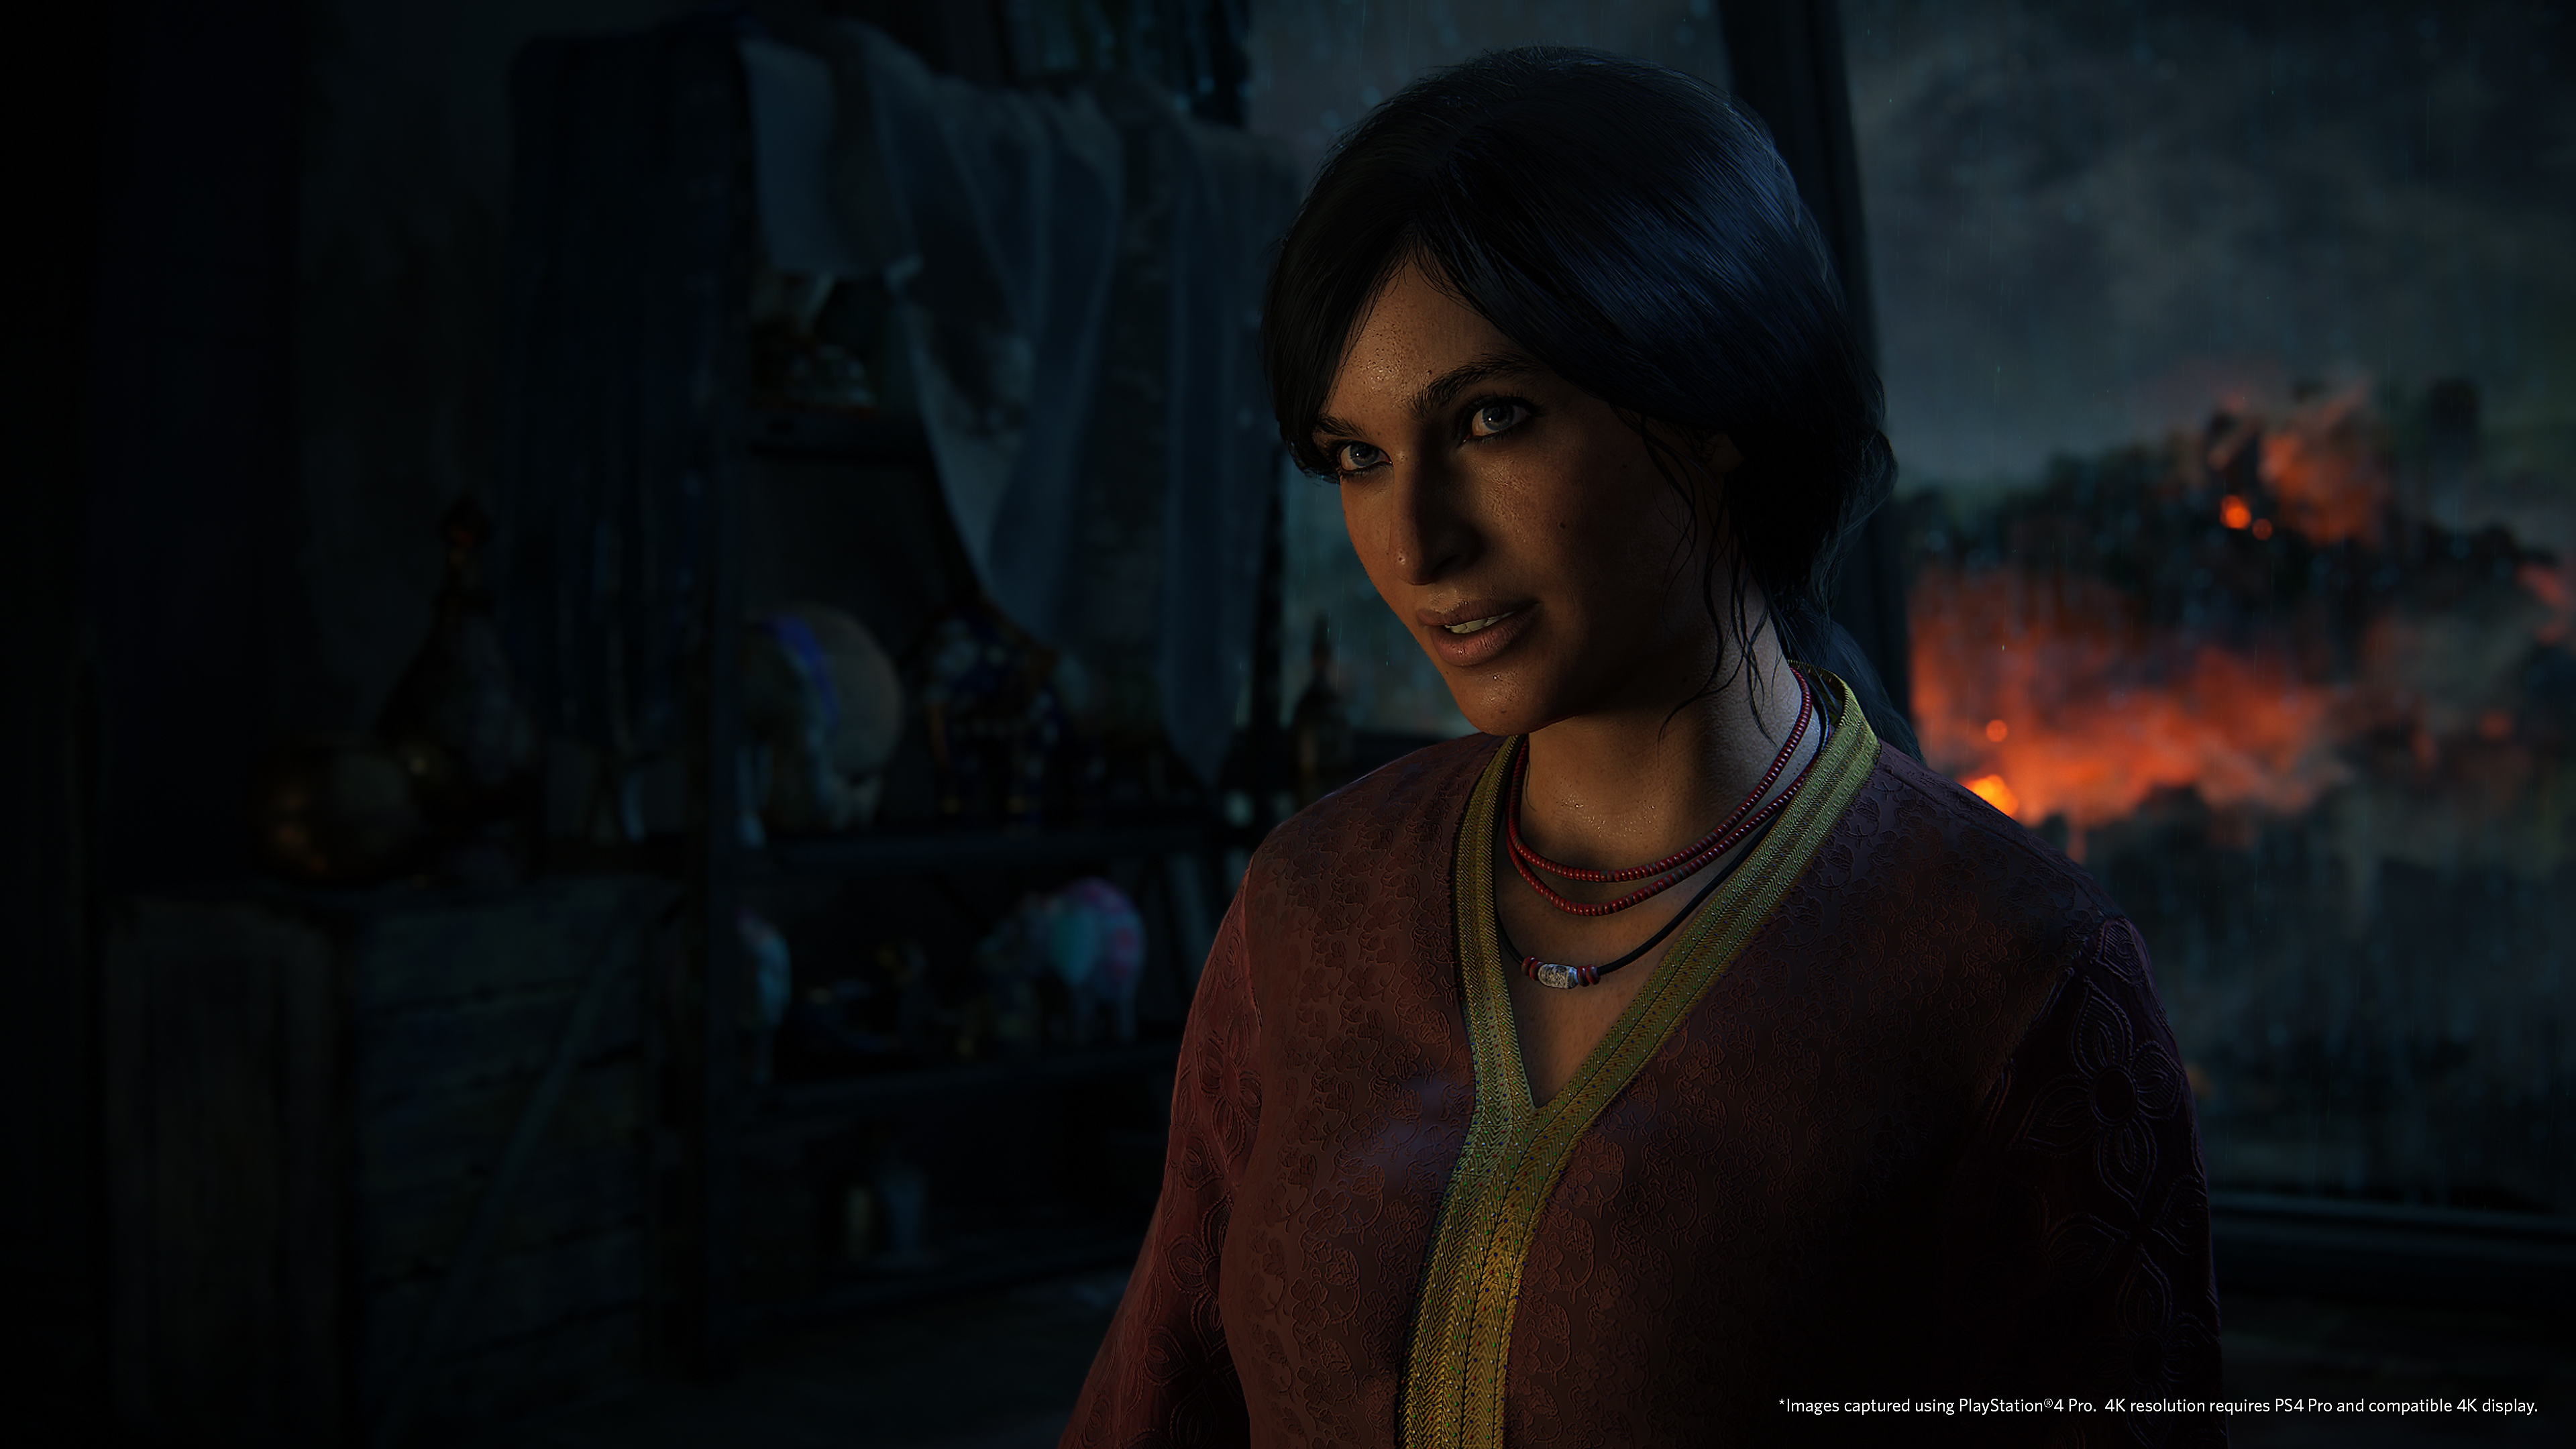 captura de pantalla de uncharted the lost legacy